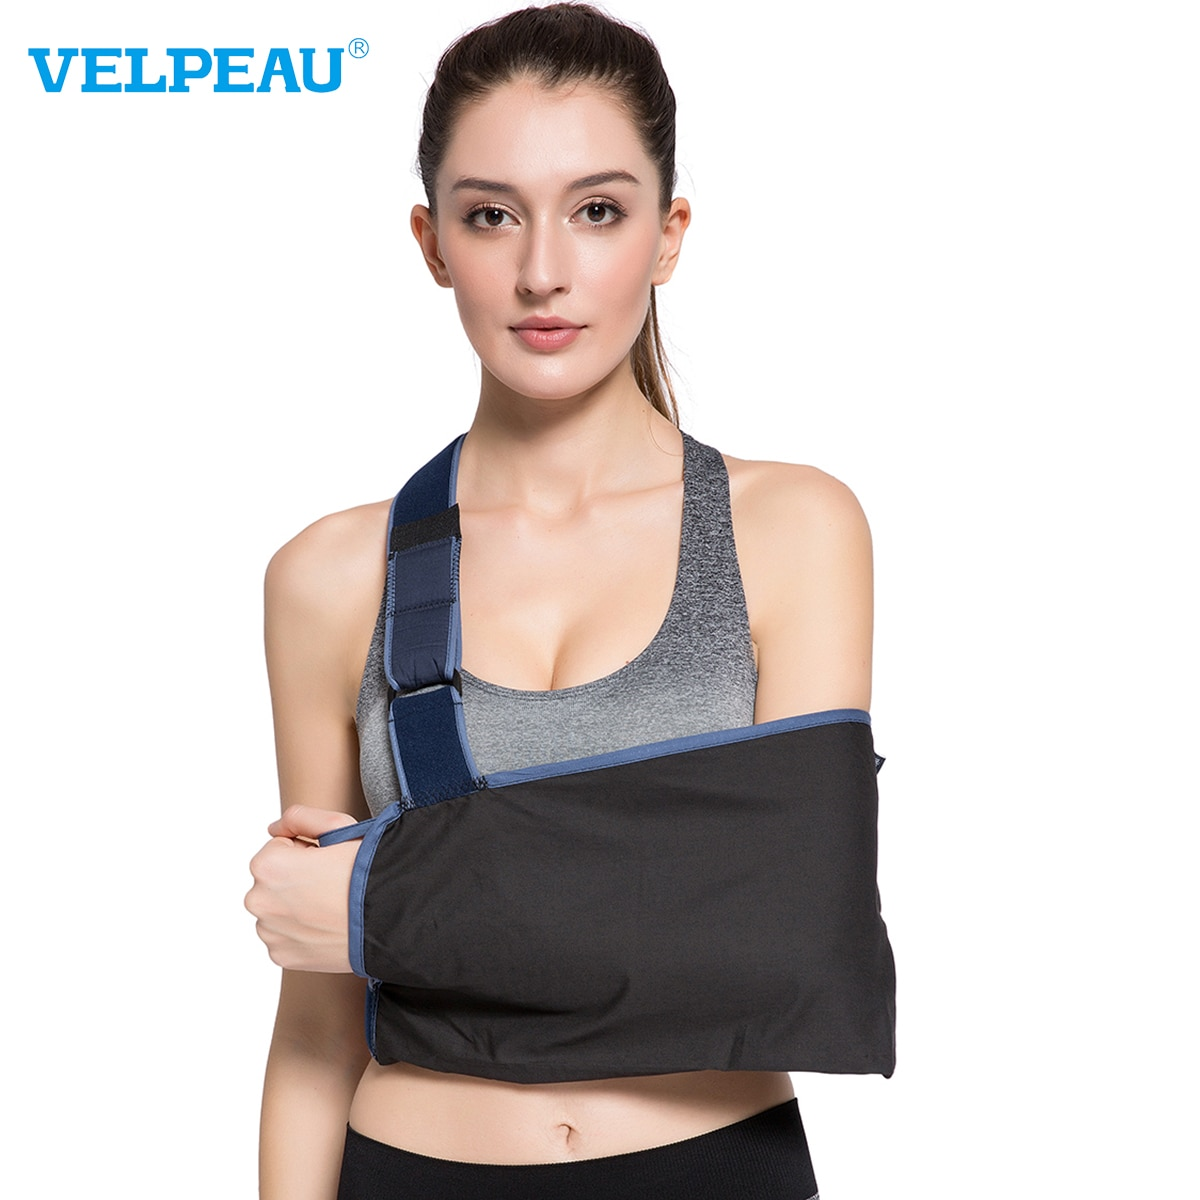 VELPEAU Lightweight Arm Sling for Fractures Bone Medical Arm Support Brace for Hand Dislocations Wit